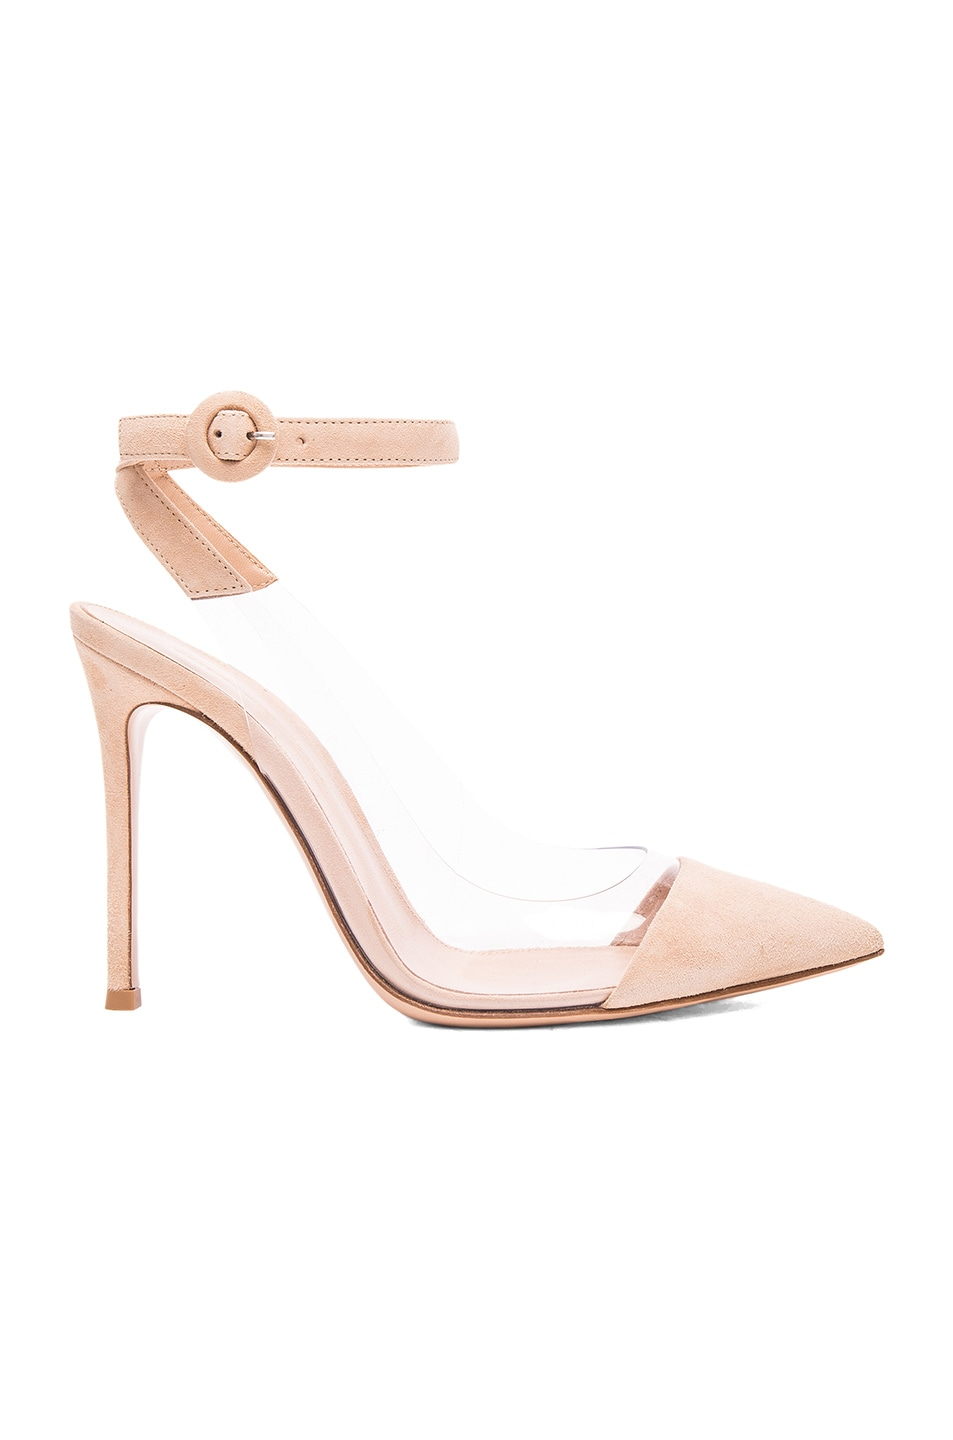 Image 1 of Gianvito Rossi Suede Plexi Slingback Pumps in Nude & Transparent